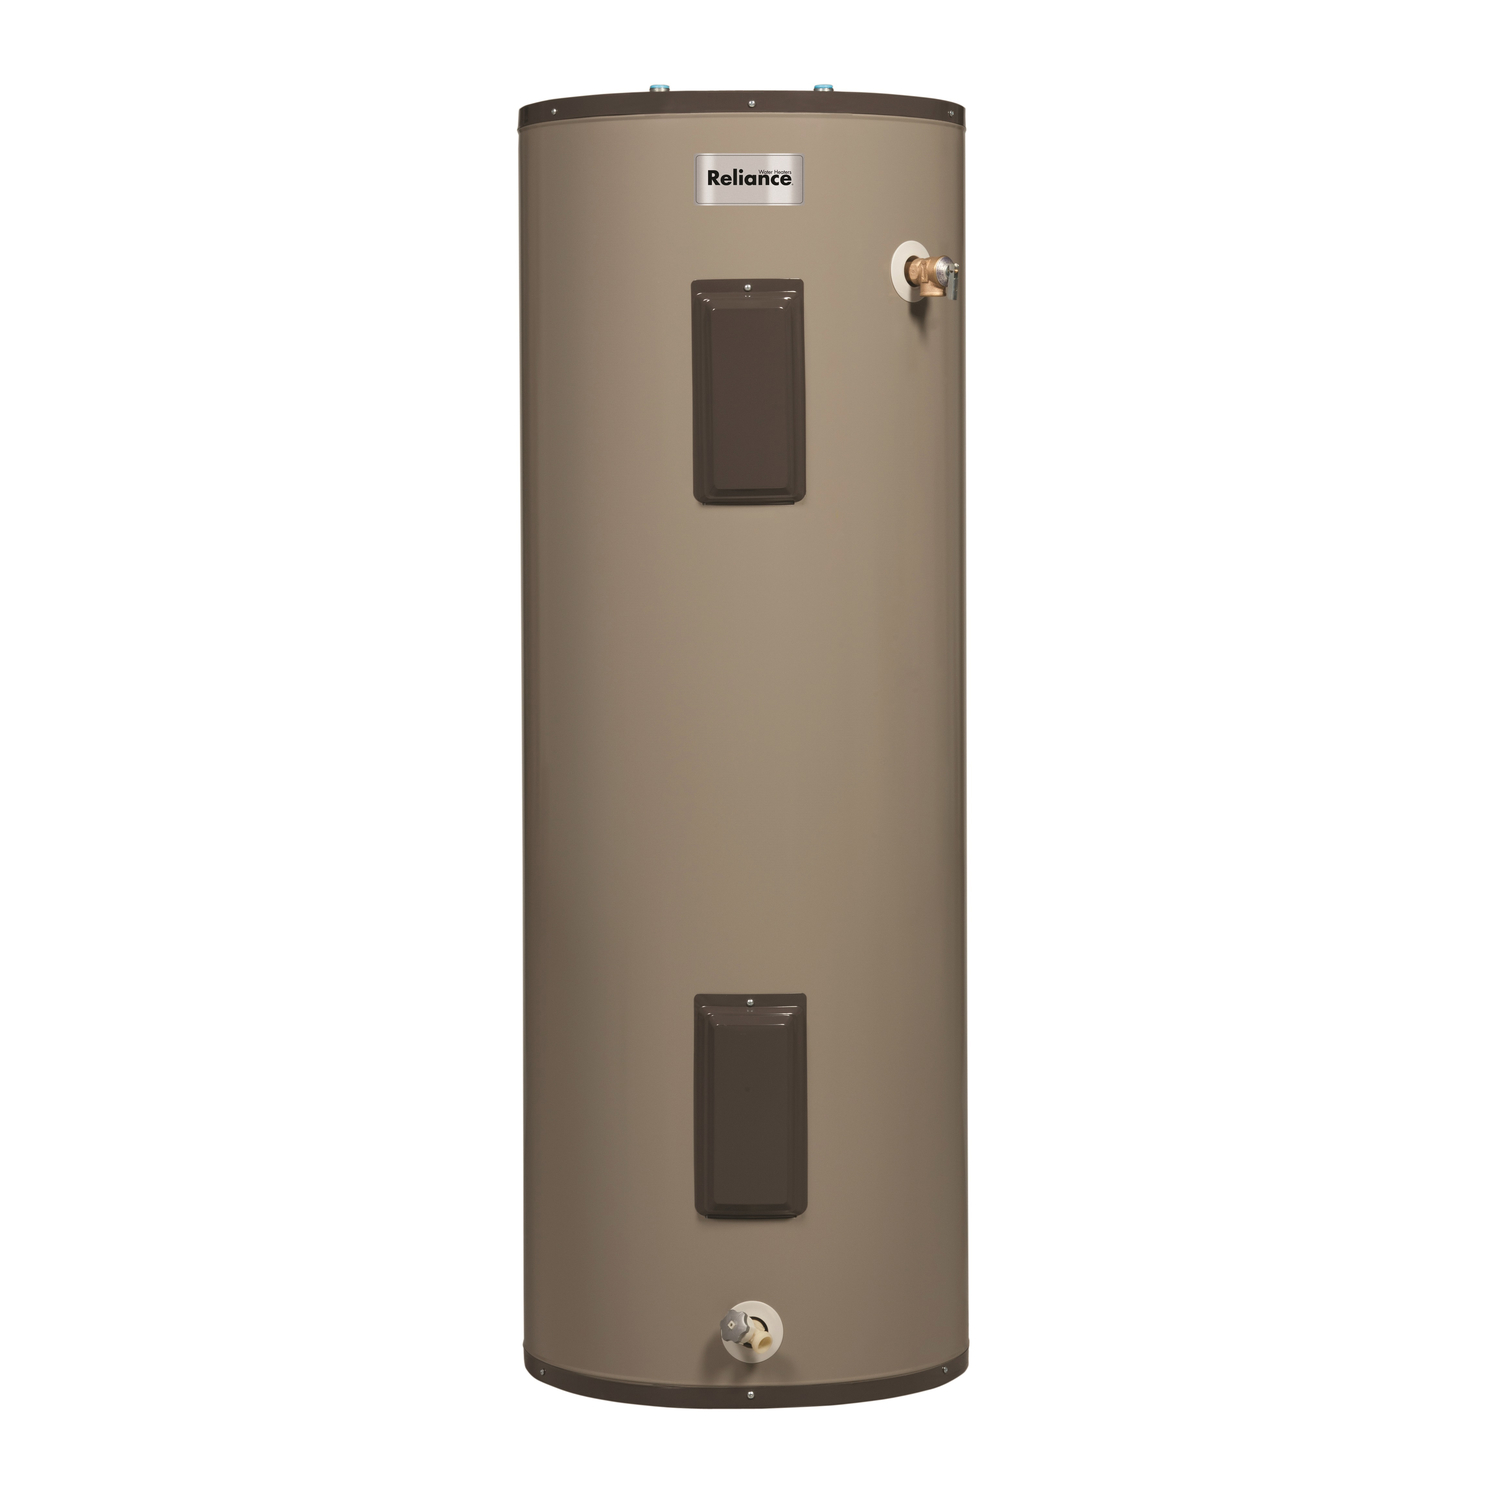 Reliance  Electric  Water Heater  60-1/4 in. H x 20 in. L x 20 in. W 40 gal.